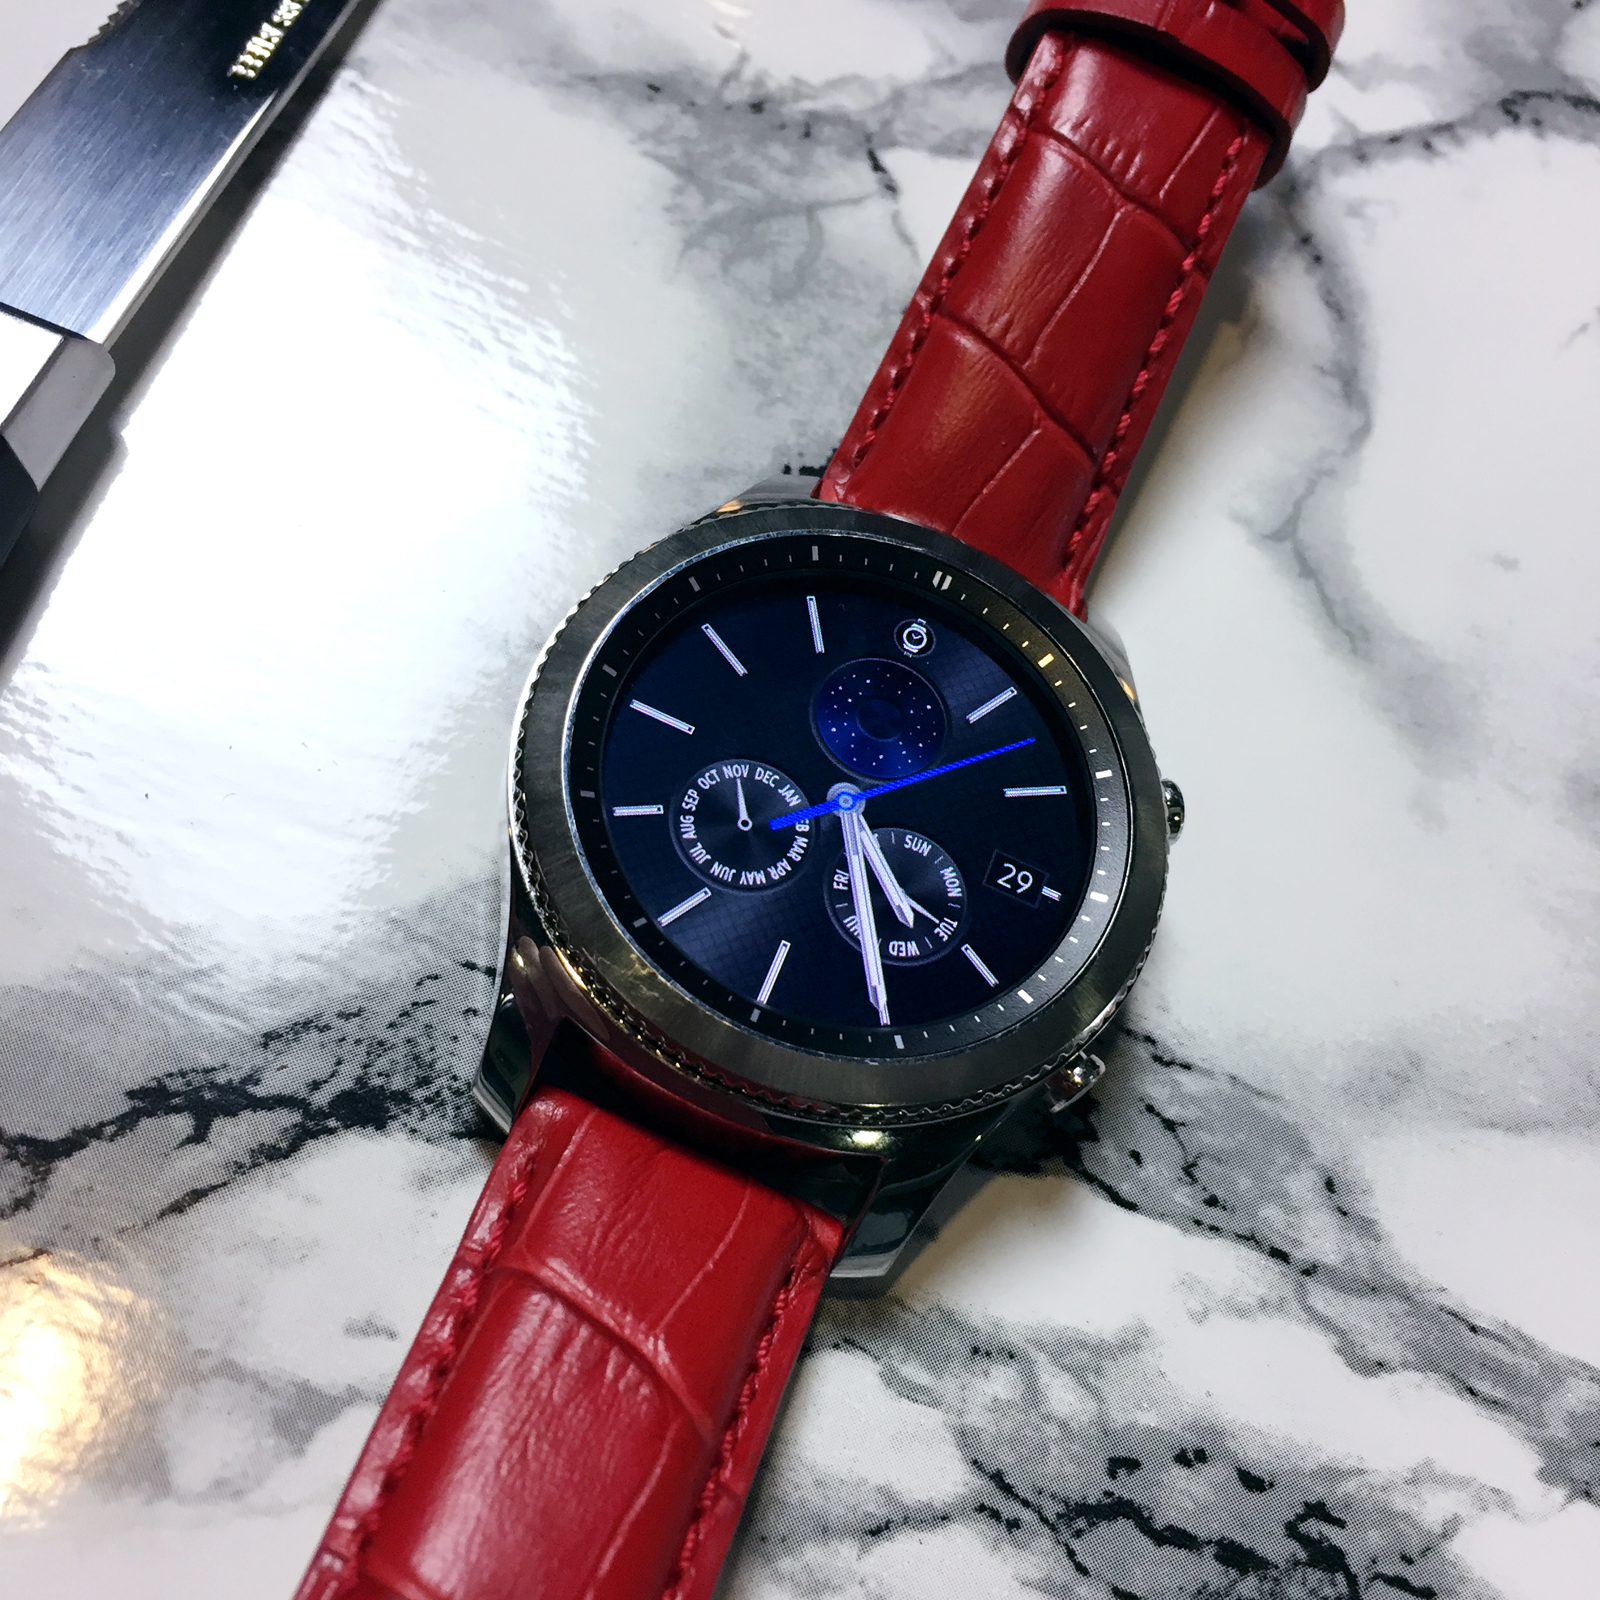 samsung-gear-s3-test-avis-montre-connectee-photo-by-blog-usofparis